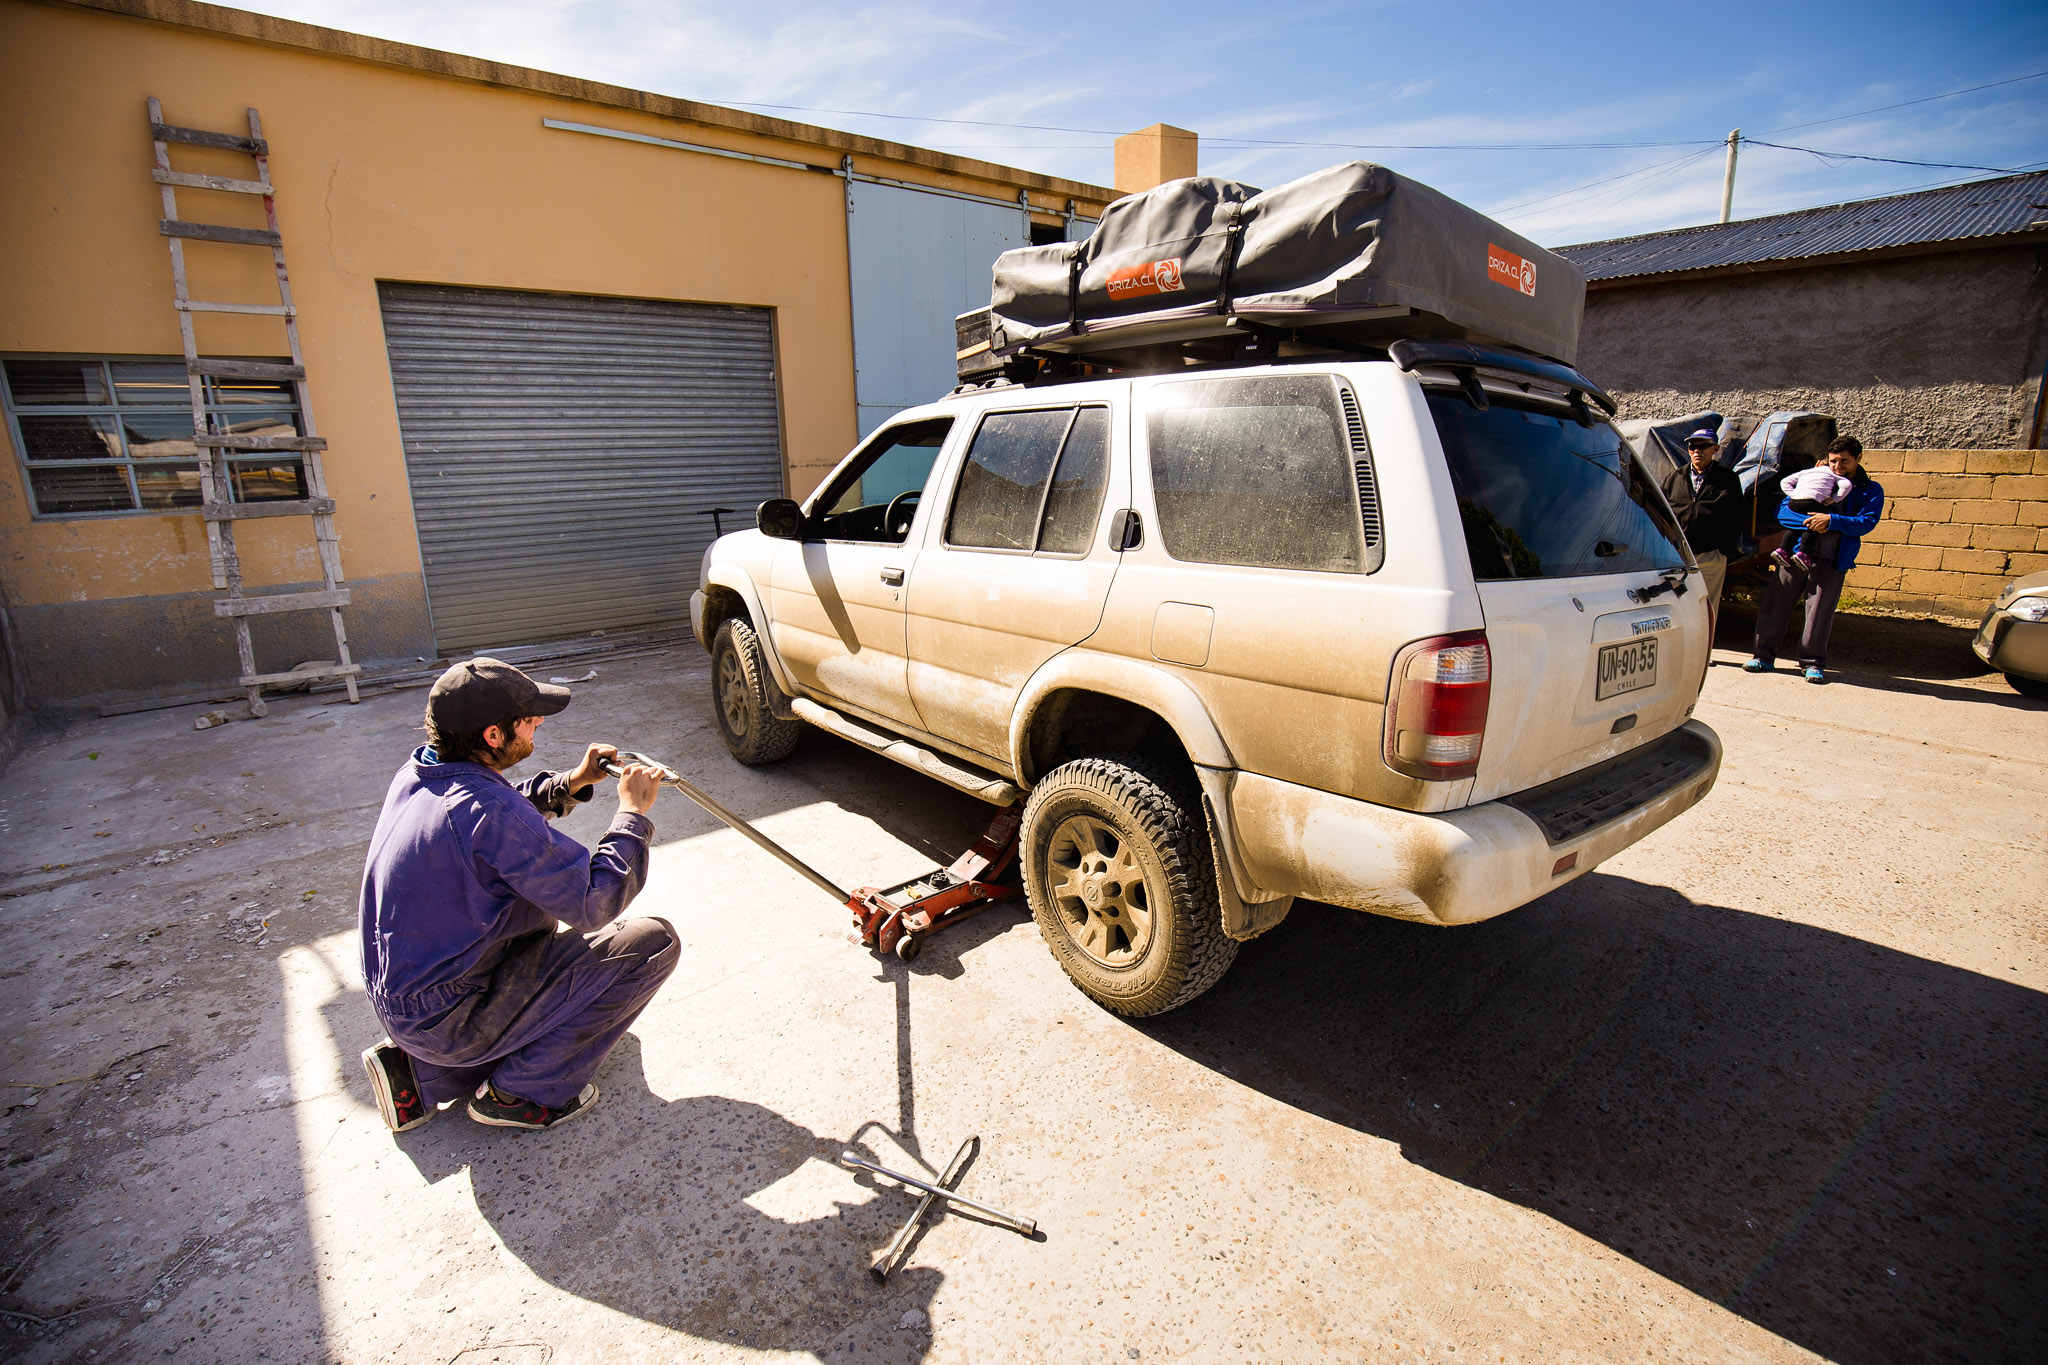 wedding-travellers-destination-wedding-photography-Argentina-coast-car-tire-puncture